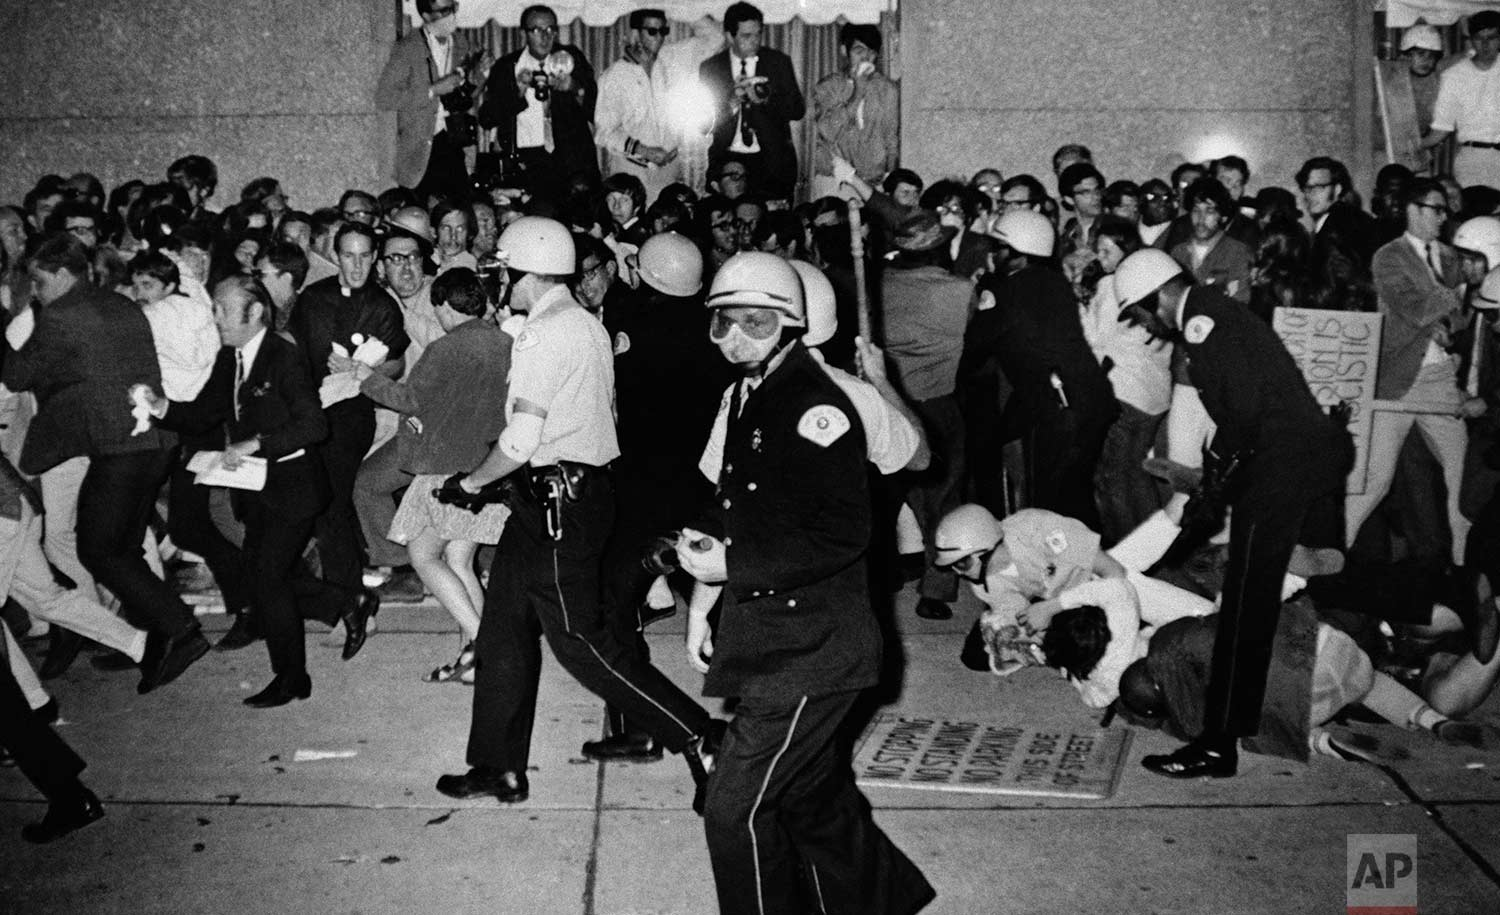 Jeers greet Chicago Police Aug. 29, 1968 as they attempt to disperse demonstrators outside the Conrad Hilton, Democratic National Convention headquarters in Chicago. Some police struggle with several demonstrators on the sidewalk. (AP Photo/Michael Boyer)